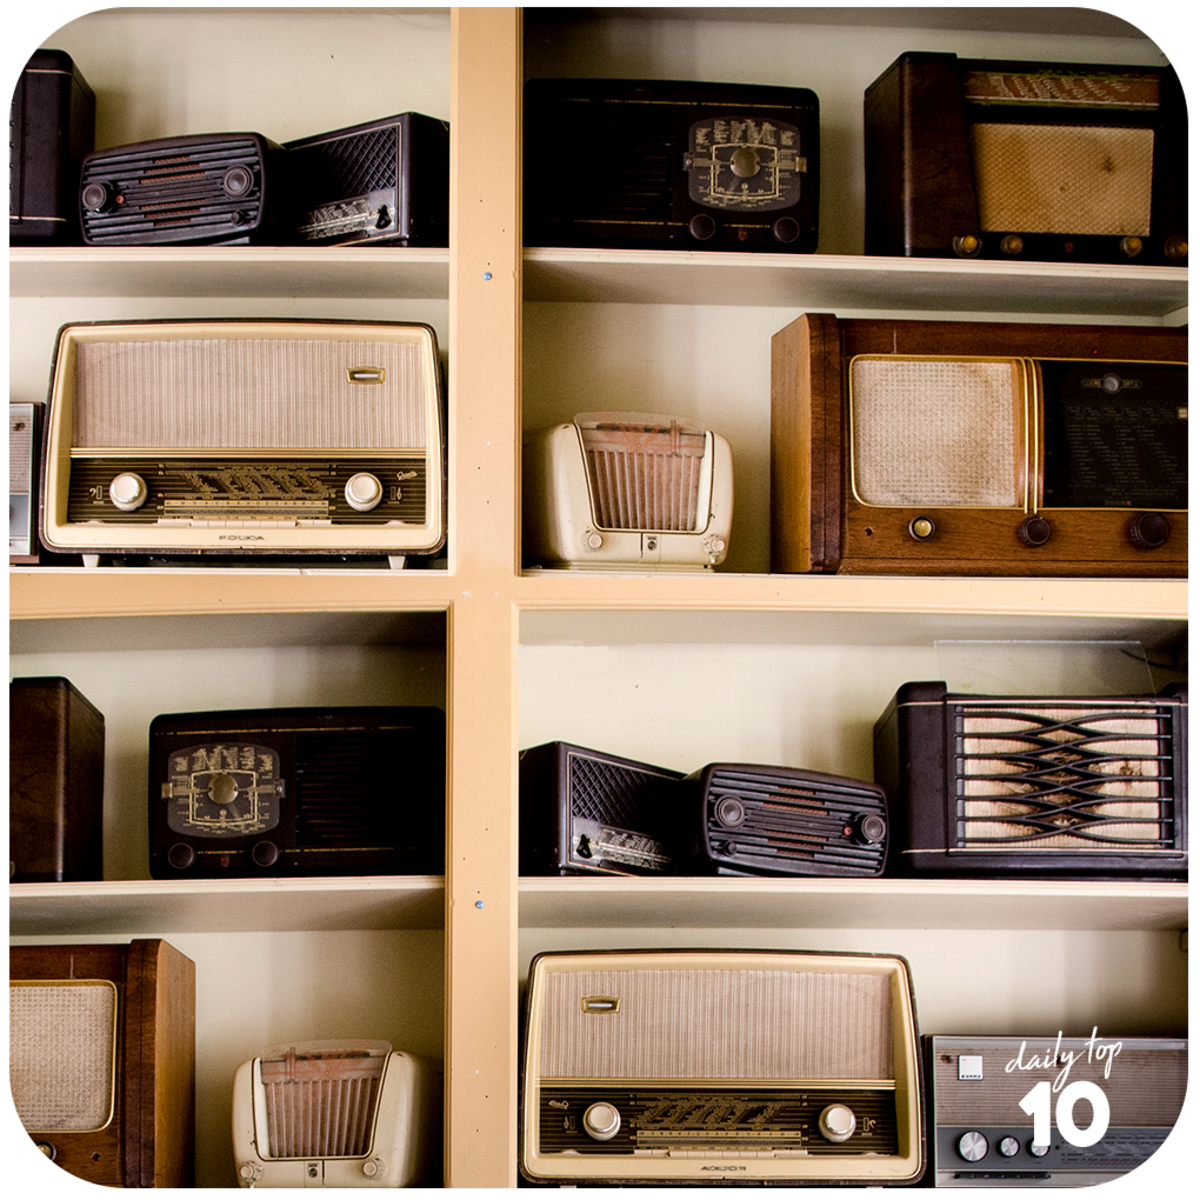 A collection of retro radios!